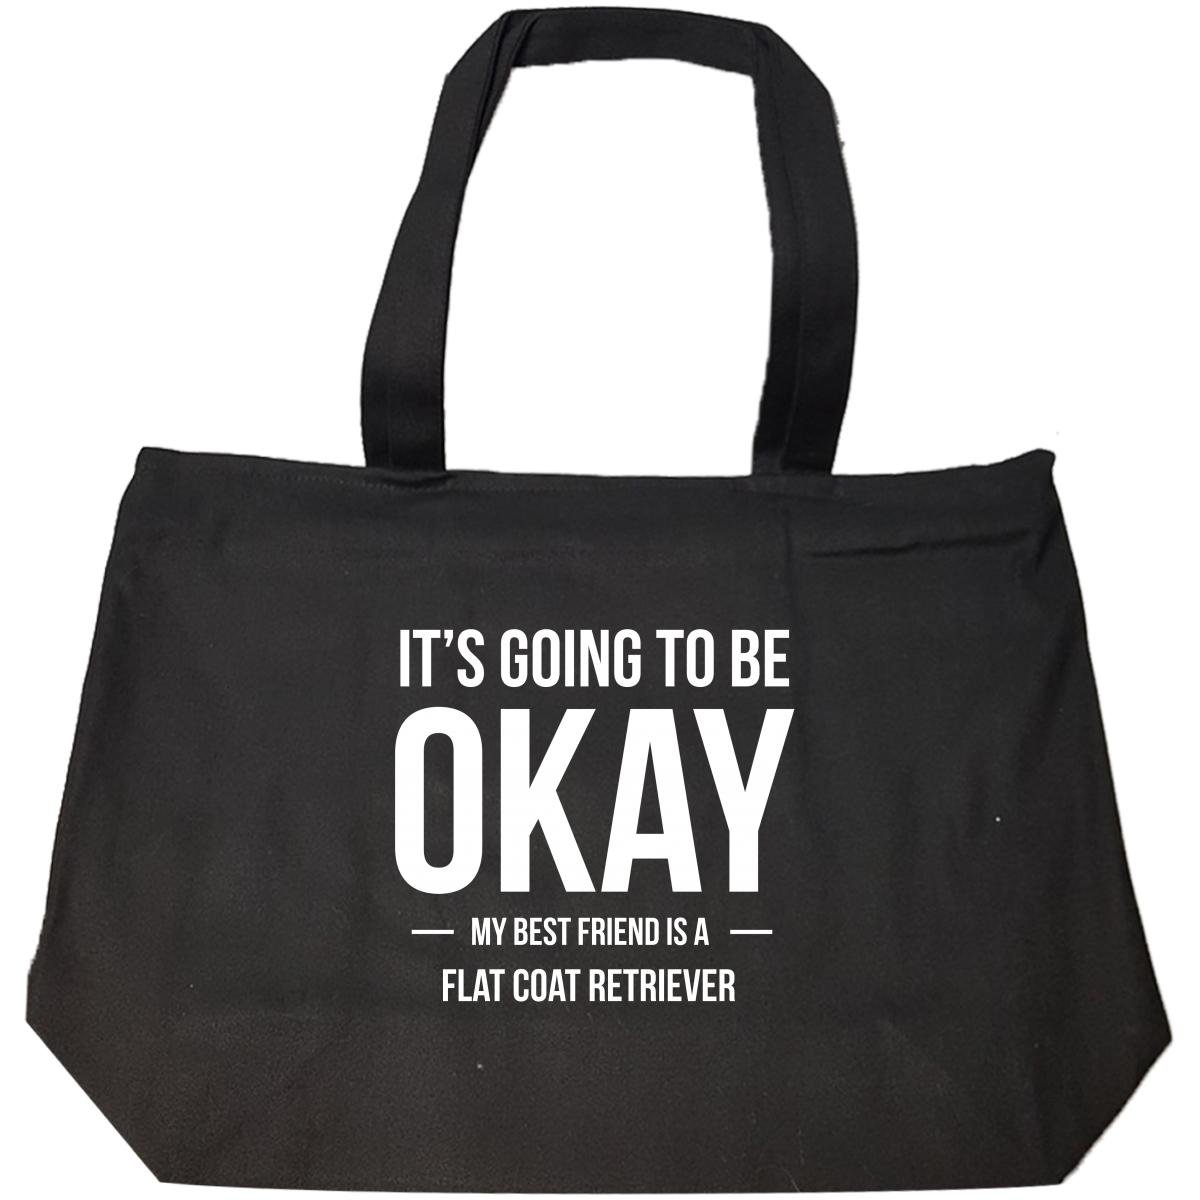 It's Going To Be Okay My Best Friend Is Flat Coat Retriever - Tote Bag With Zip